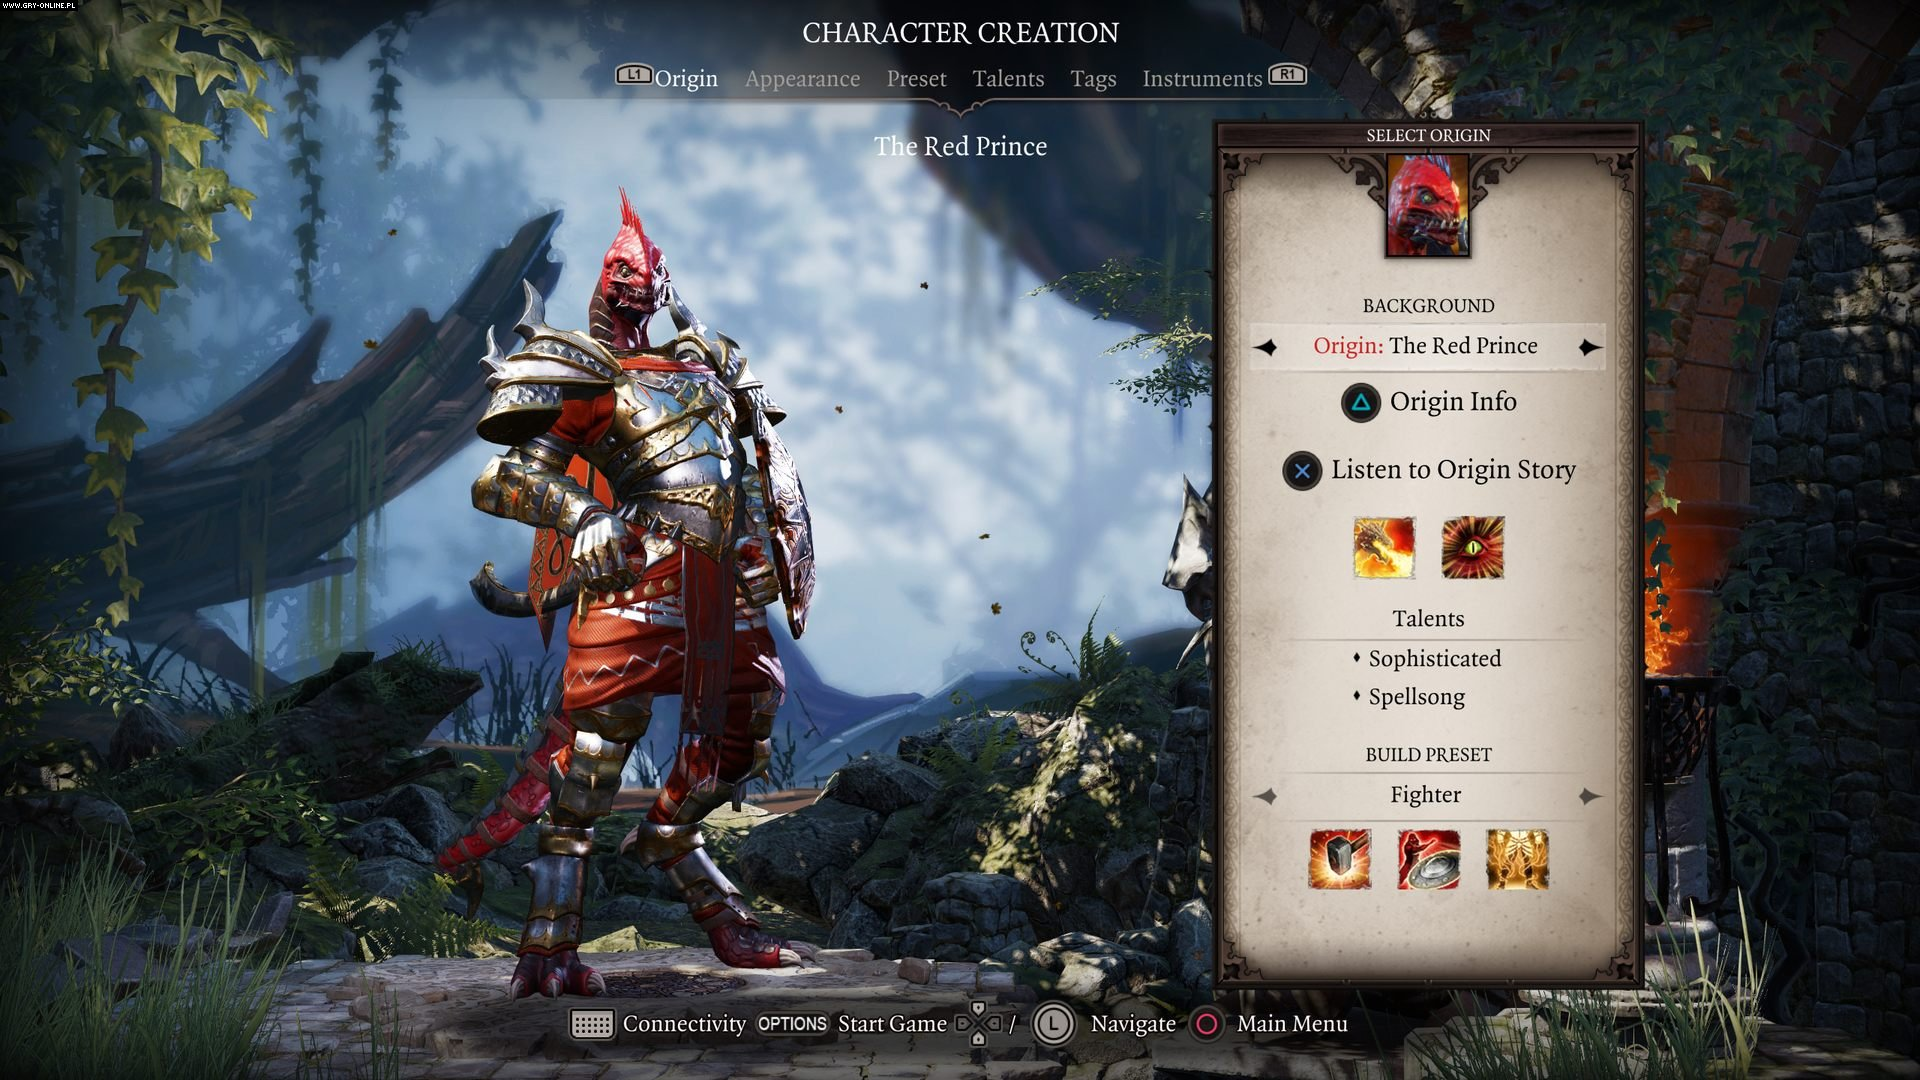 Divinity: Original Sin II - Definitive Edition PC, PS4, XONE Games Image 31/299, Larian Studios